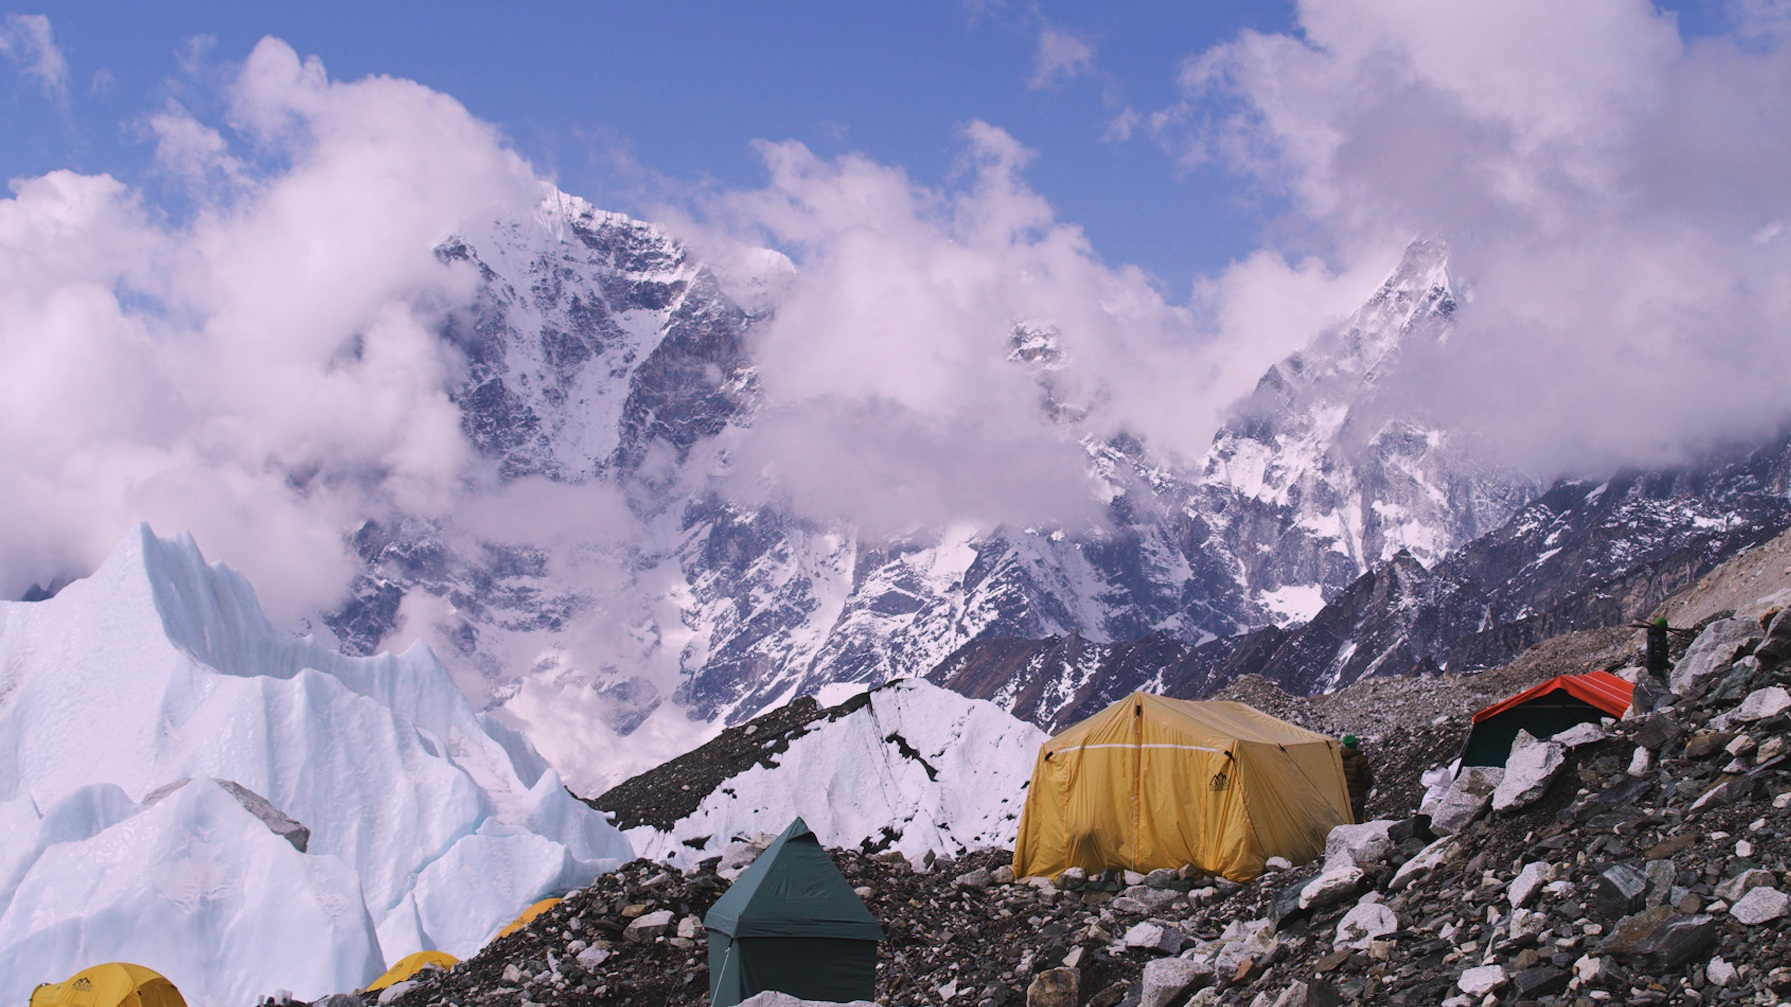 EVEREST: DYING TO QUEUE - Queuing to reach the top of the worldBBC